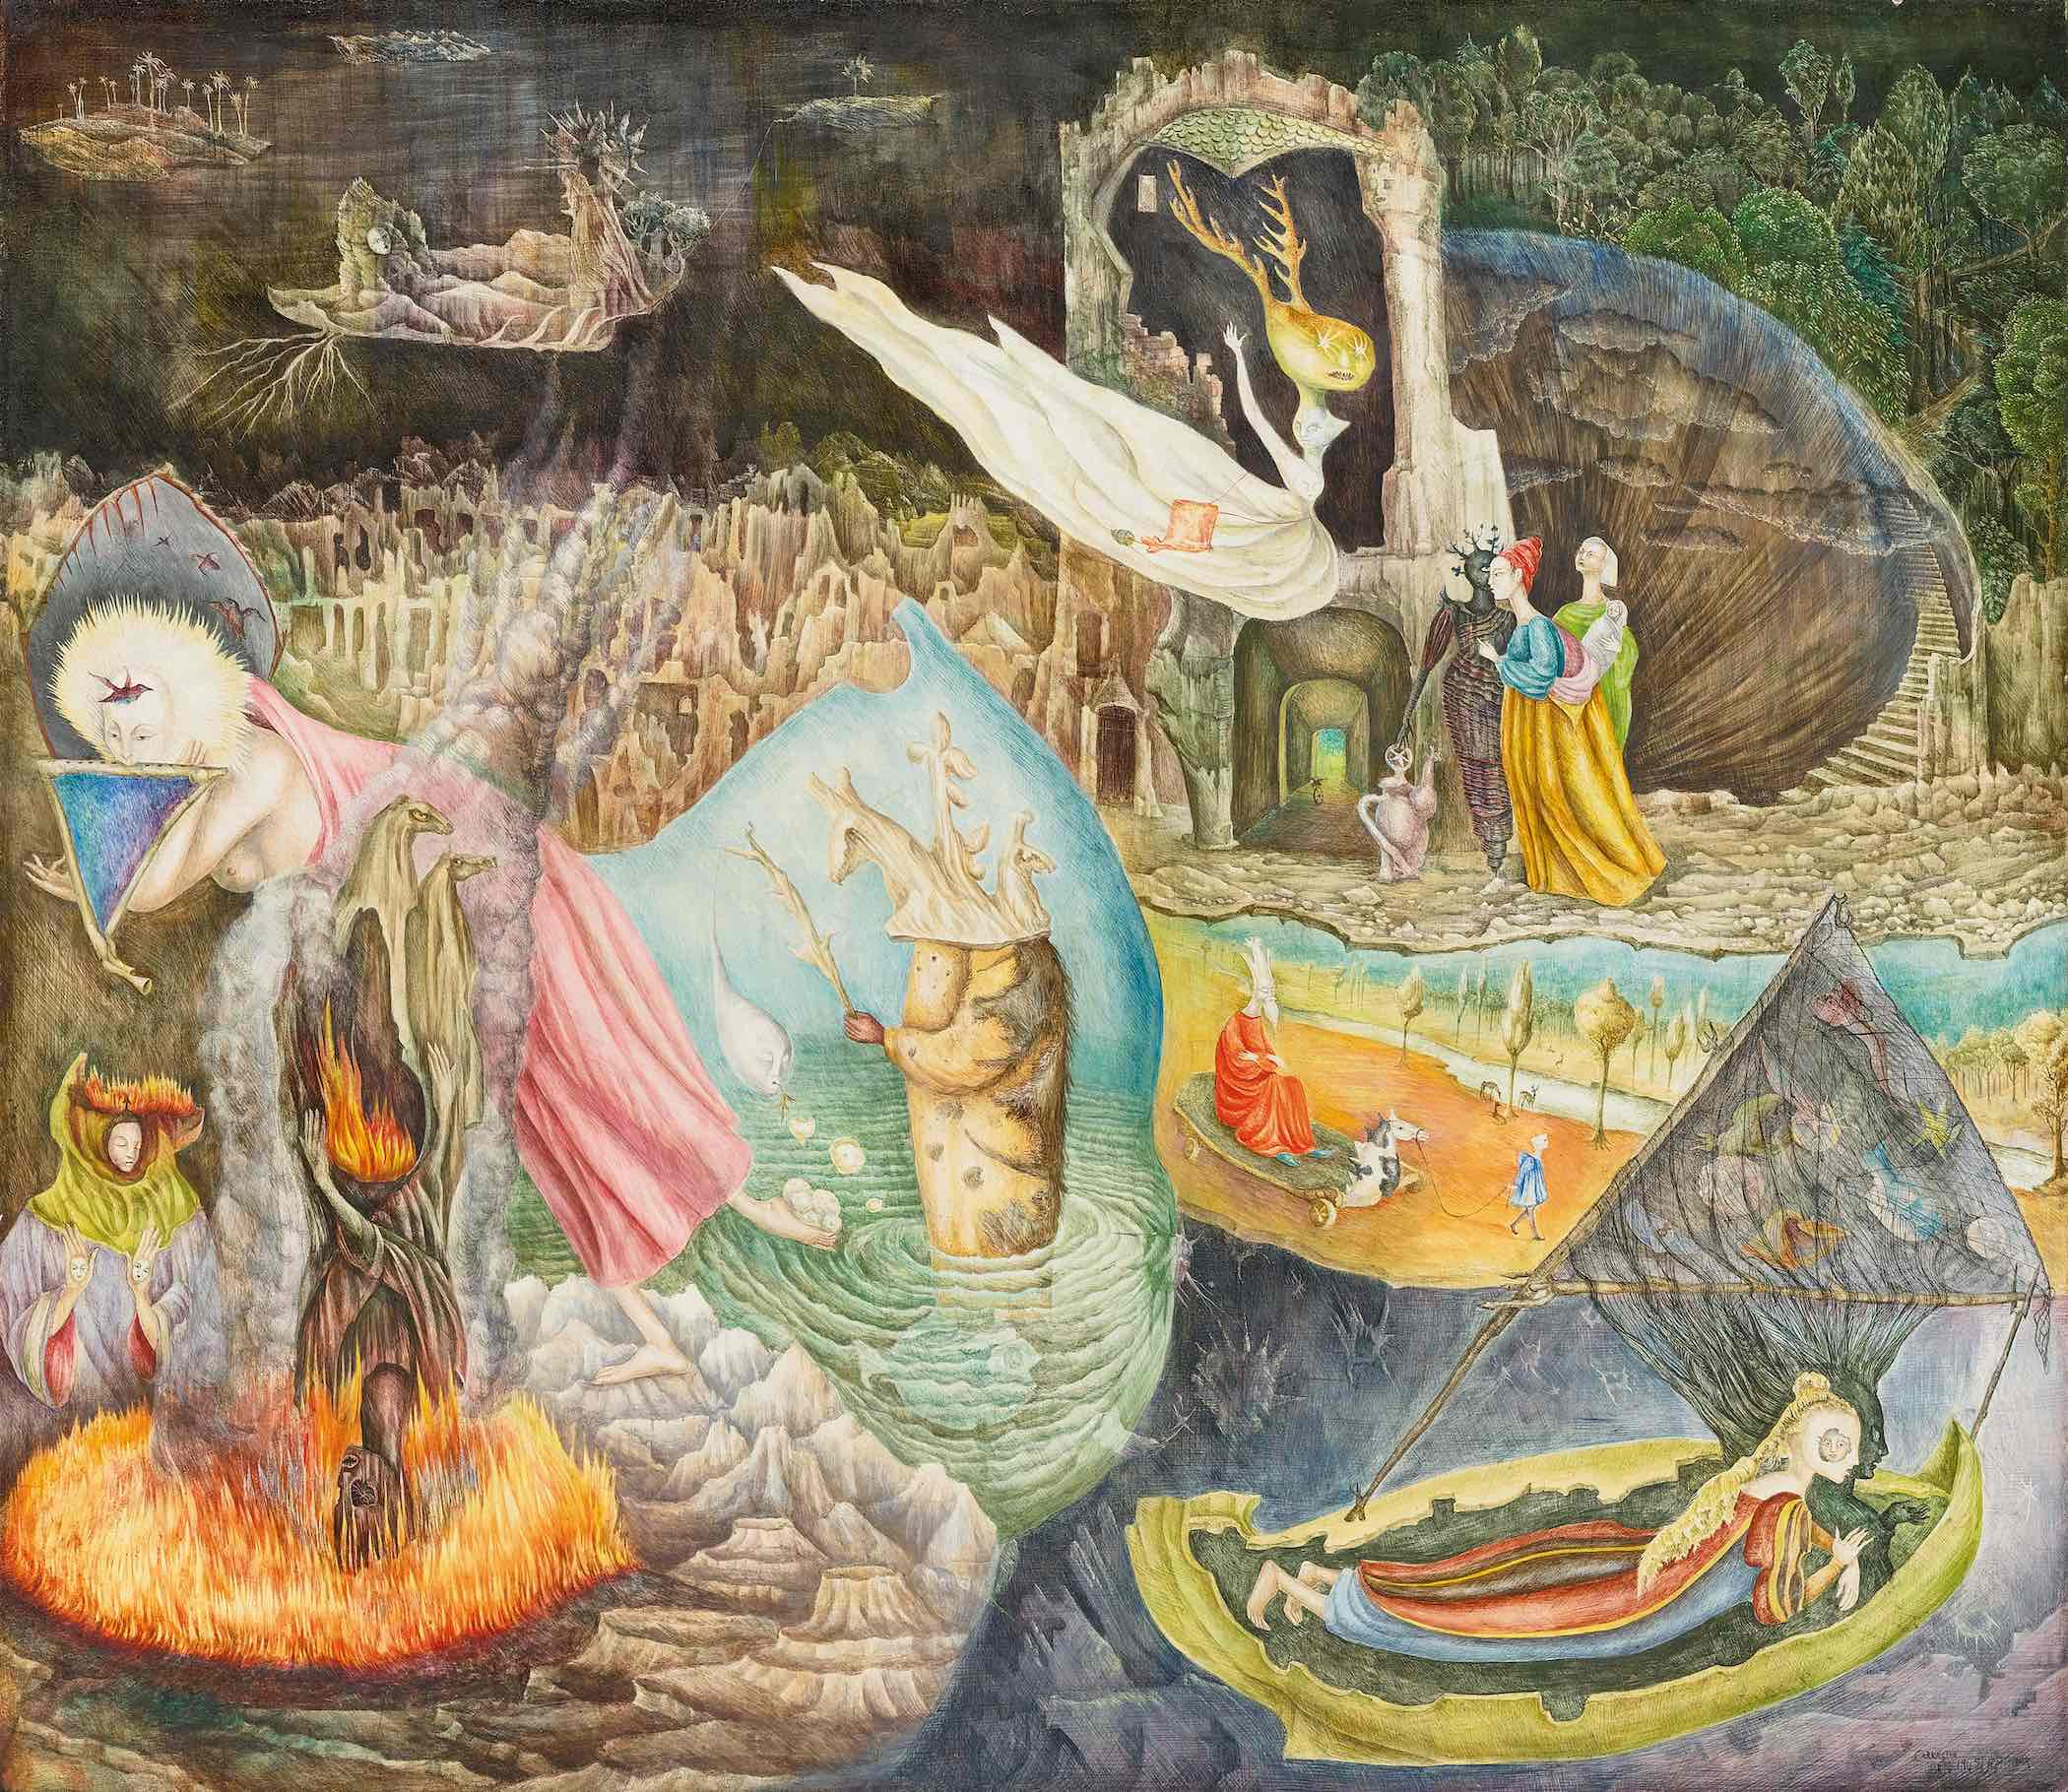 Leonora Carrington, Les Distractions de Dagobert, 1945. Signed Carrington and dated 1945 September (lower right). Tempera on Masonite, 74.9 by 86.7 cm (291⁄2 by 341⁄8 in.) Private Collection. Image courtesy of Di Donna